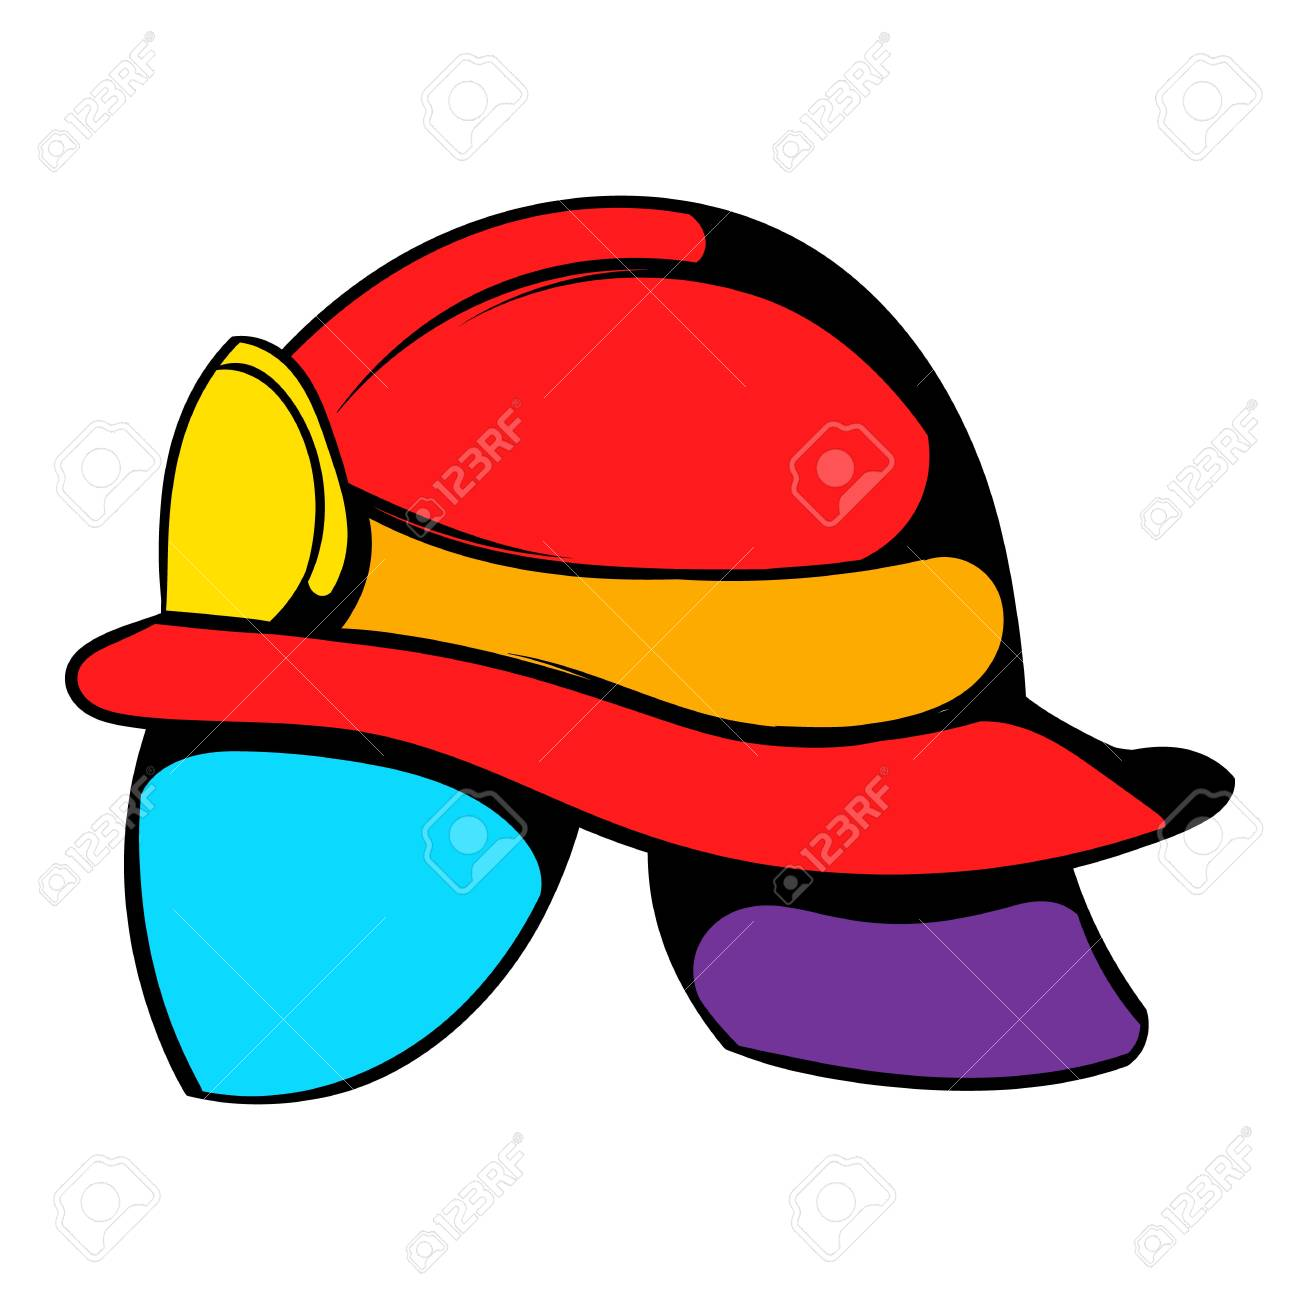 1300x1300 Helmet For A Firefighter Icon, Icon Cartoon Royalty Free Cliparts